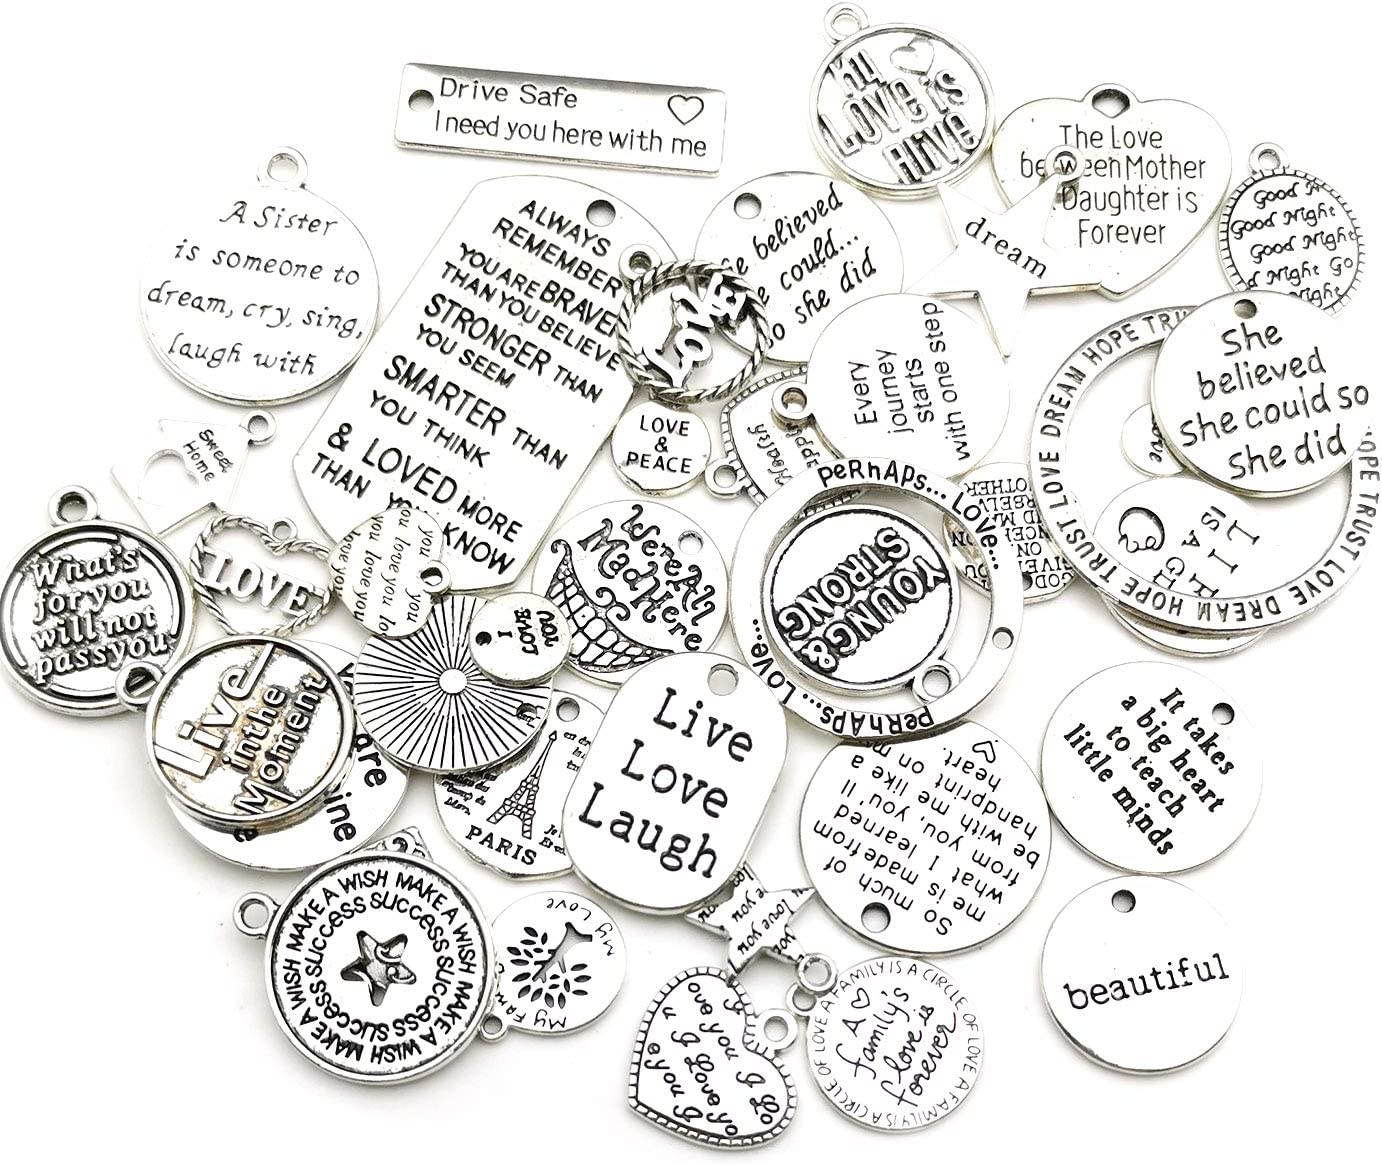 M373 WOCRAFT 80pcs Inspiration Words Charms Craft Supplies Beads Charms Pendants for Jewelry Making Crafting Findings Accessory for DIY Necklace Bracelet